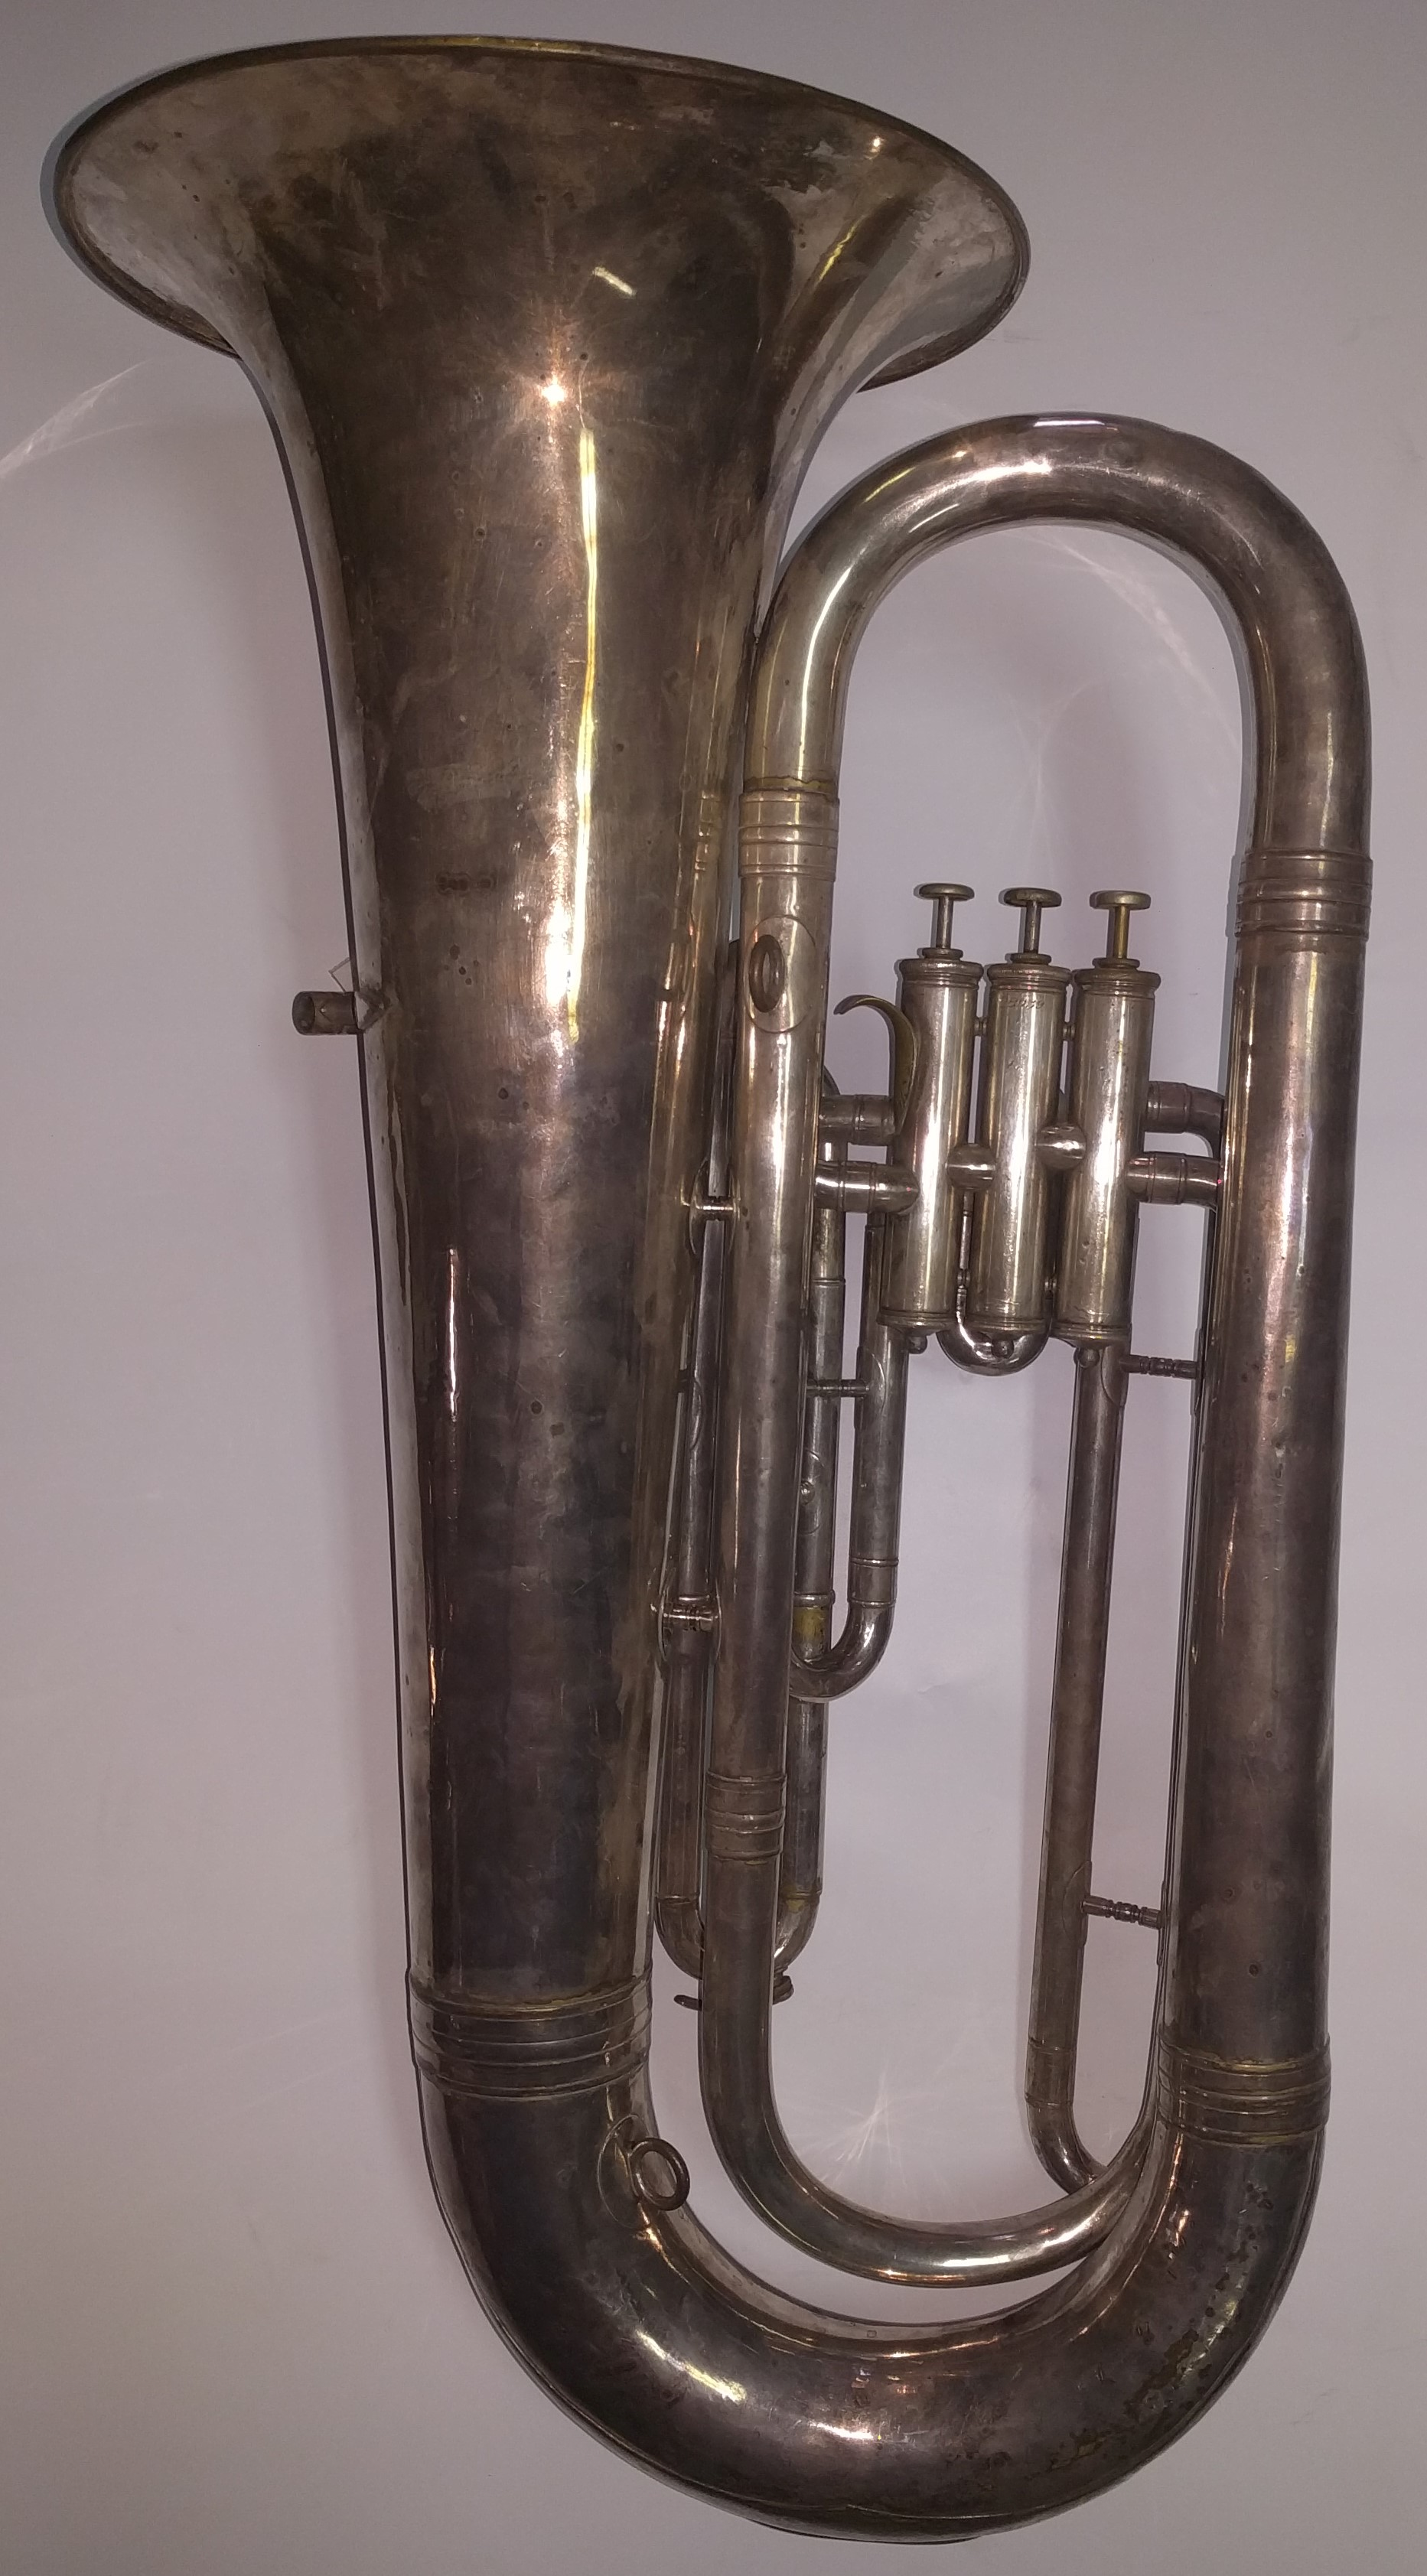 a history of the euphonium a musical instrument Euphonium fanfare in montreal, close-up of an euphonium euphonium the musical instrument classical wind musical instrument baritone euphonium isolated on.